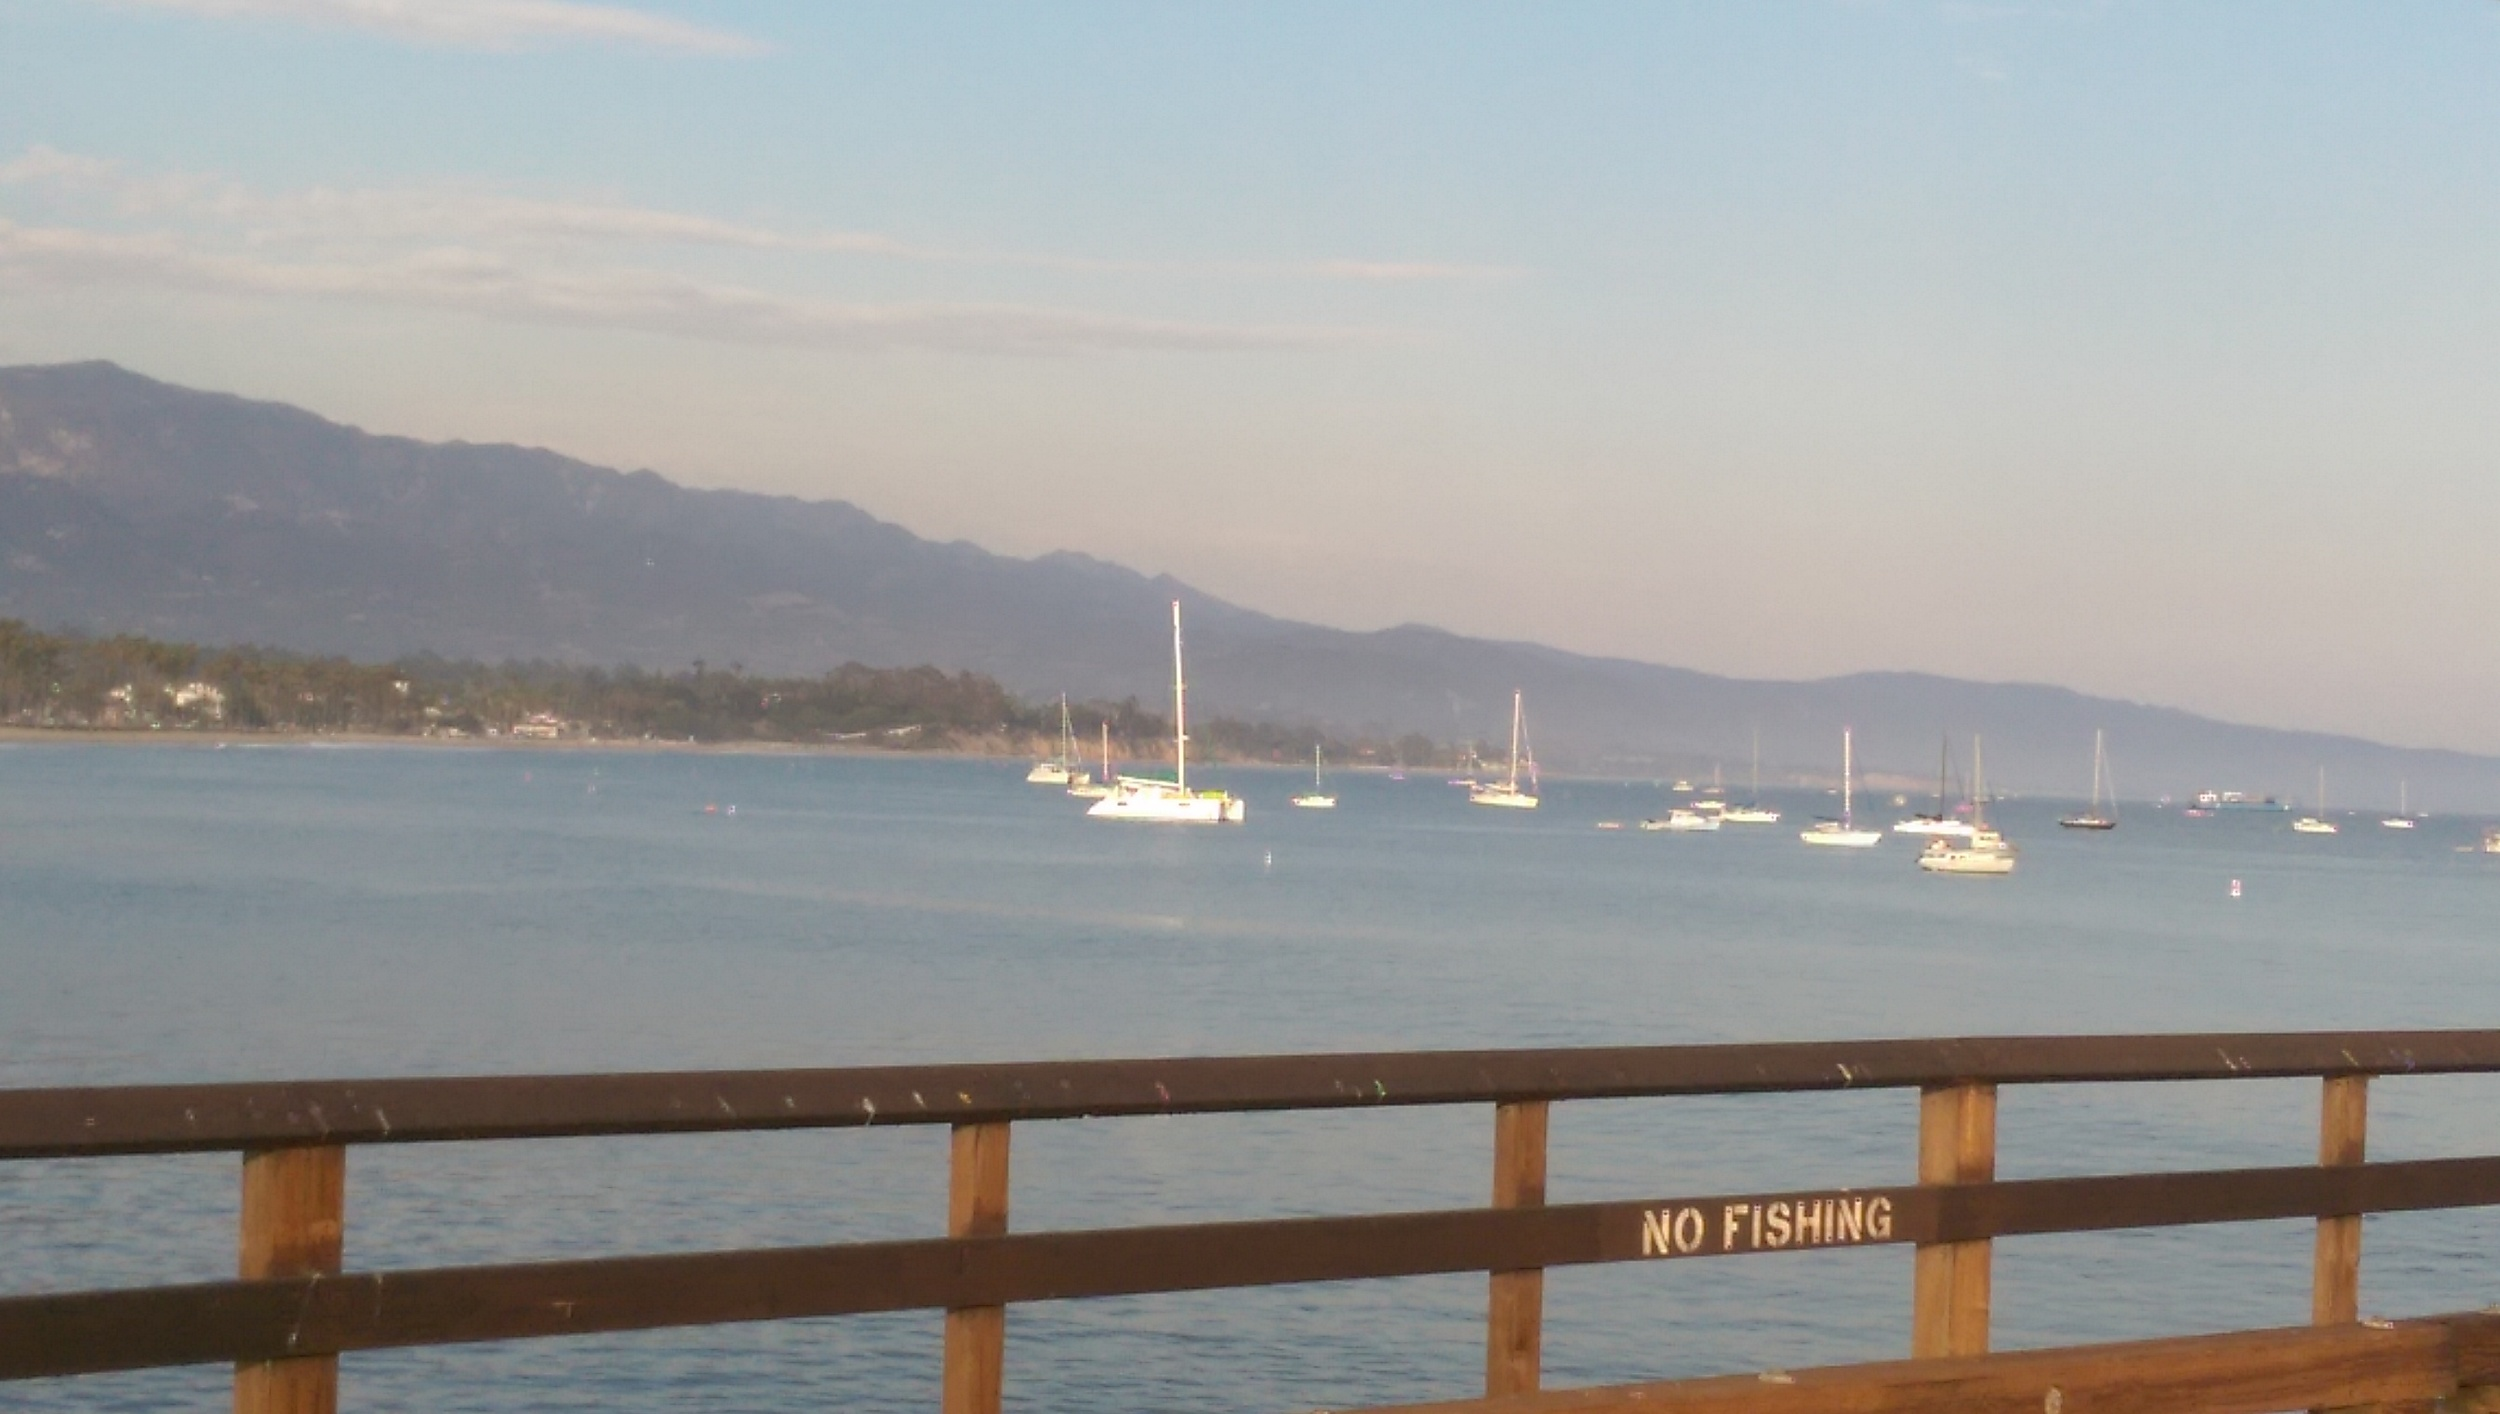 Some yachts on the water in Santa Barbara